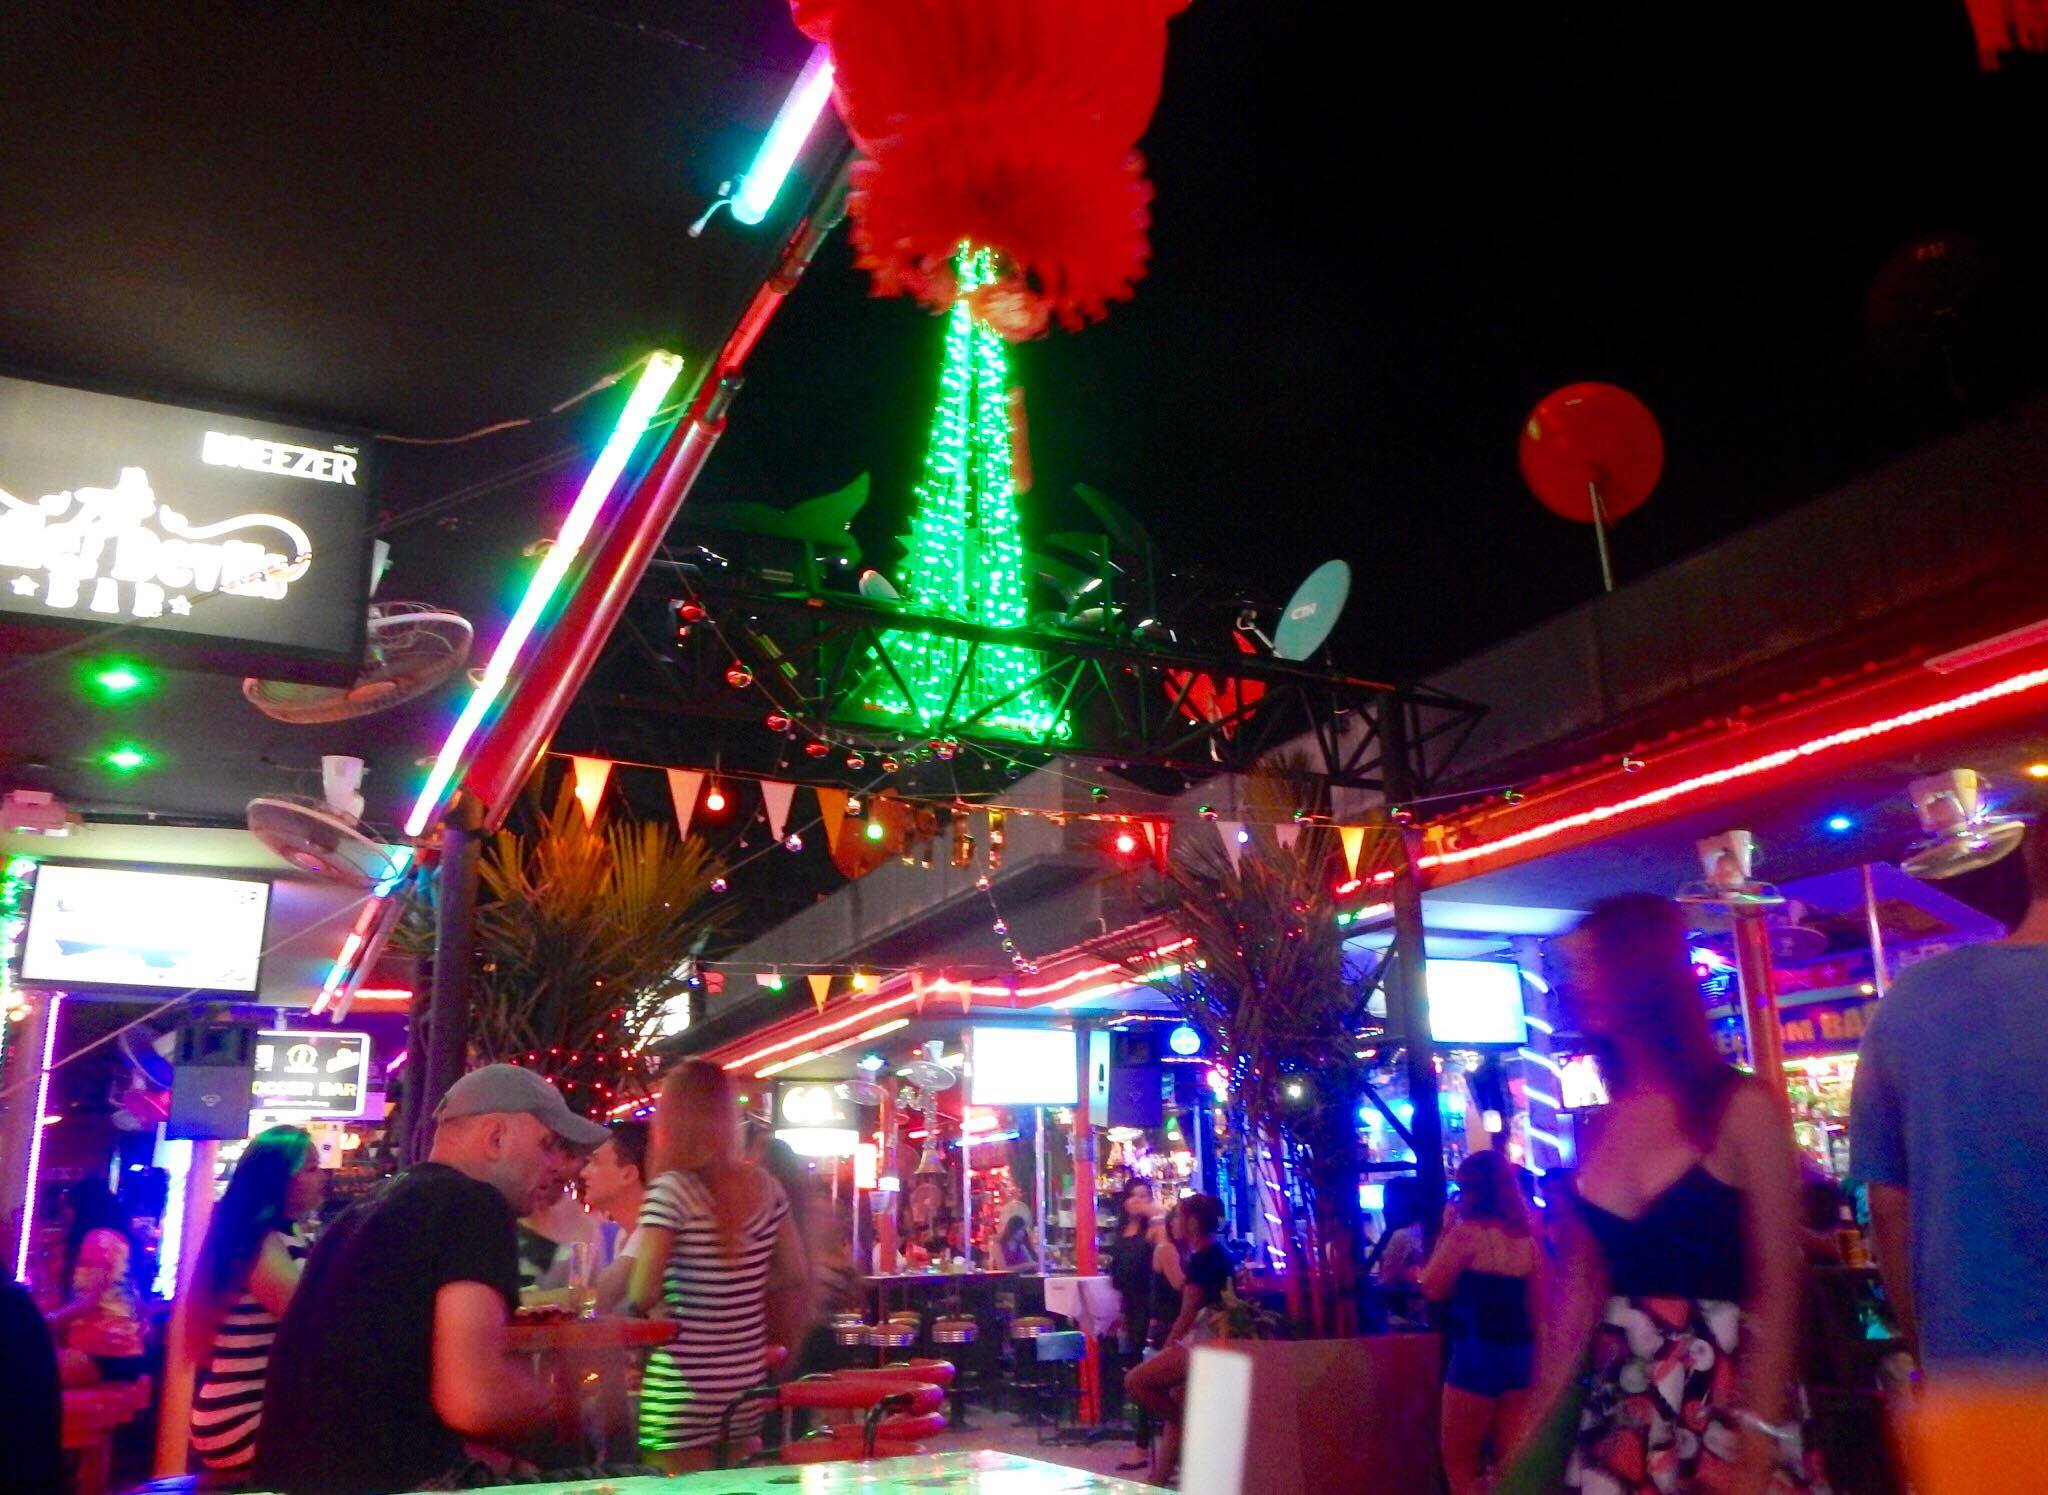 Phuket Thailand Nightlife Energy City Travel Blogger Inspiration